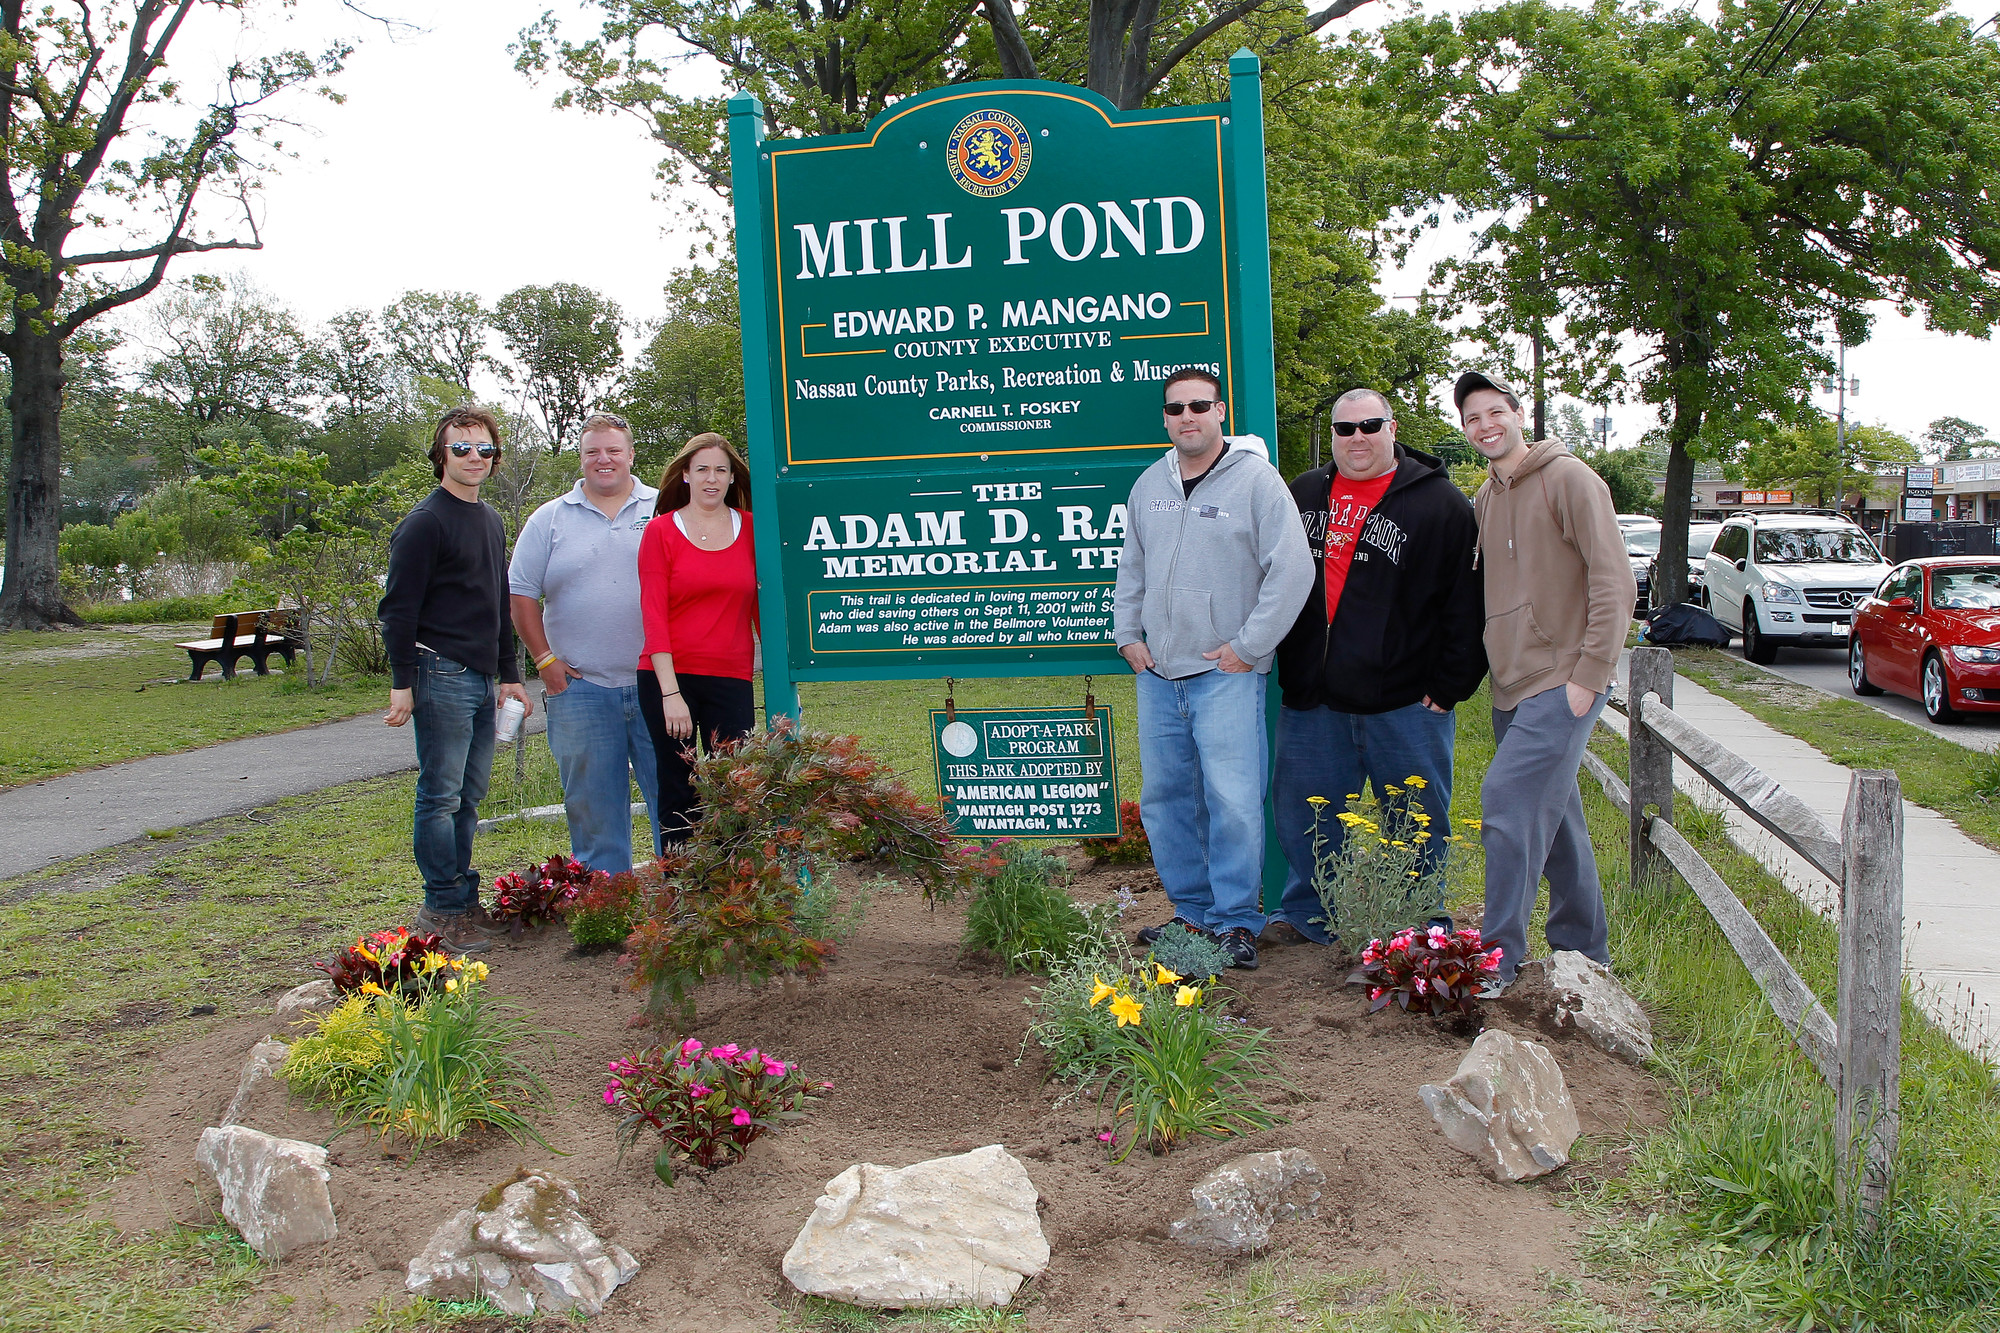 Last May, the South Bellmore Civic Association planted at Mill Pond Park. They will be continuing their efforts to beautify Bellmore by sponsoring their first spring cleanup event on Saturday, May 3.